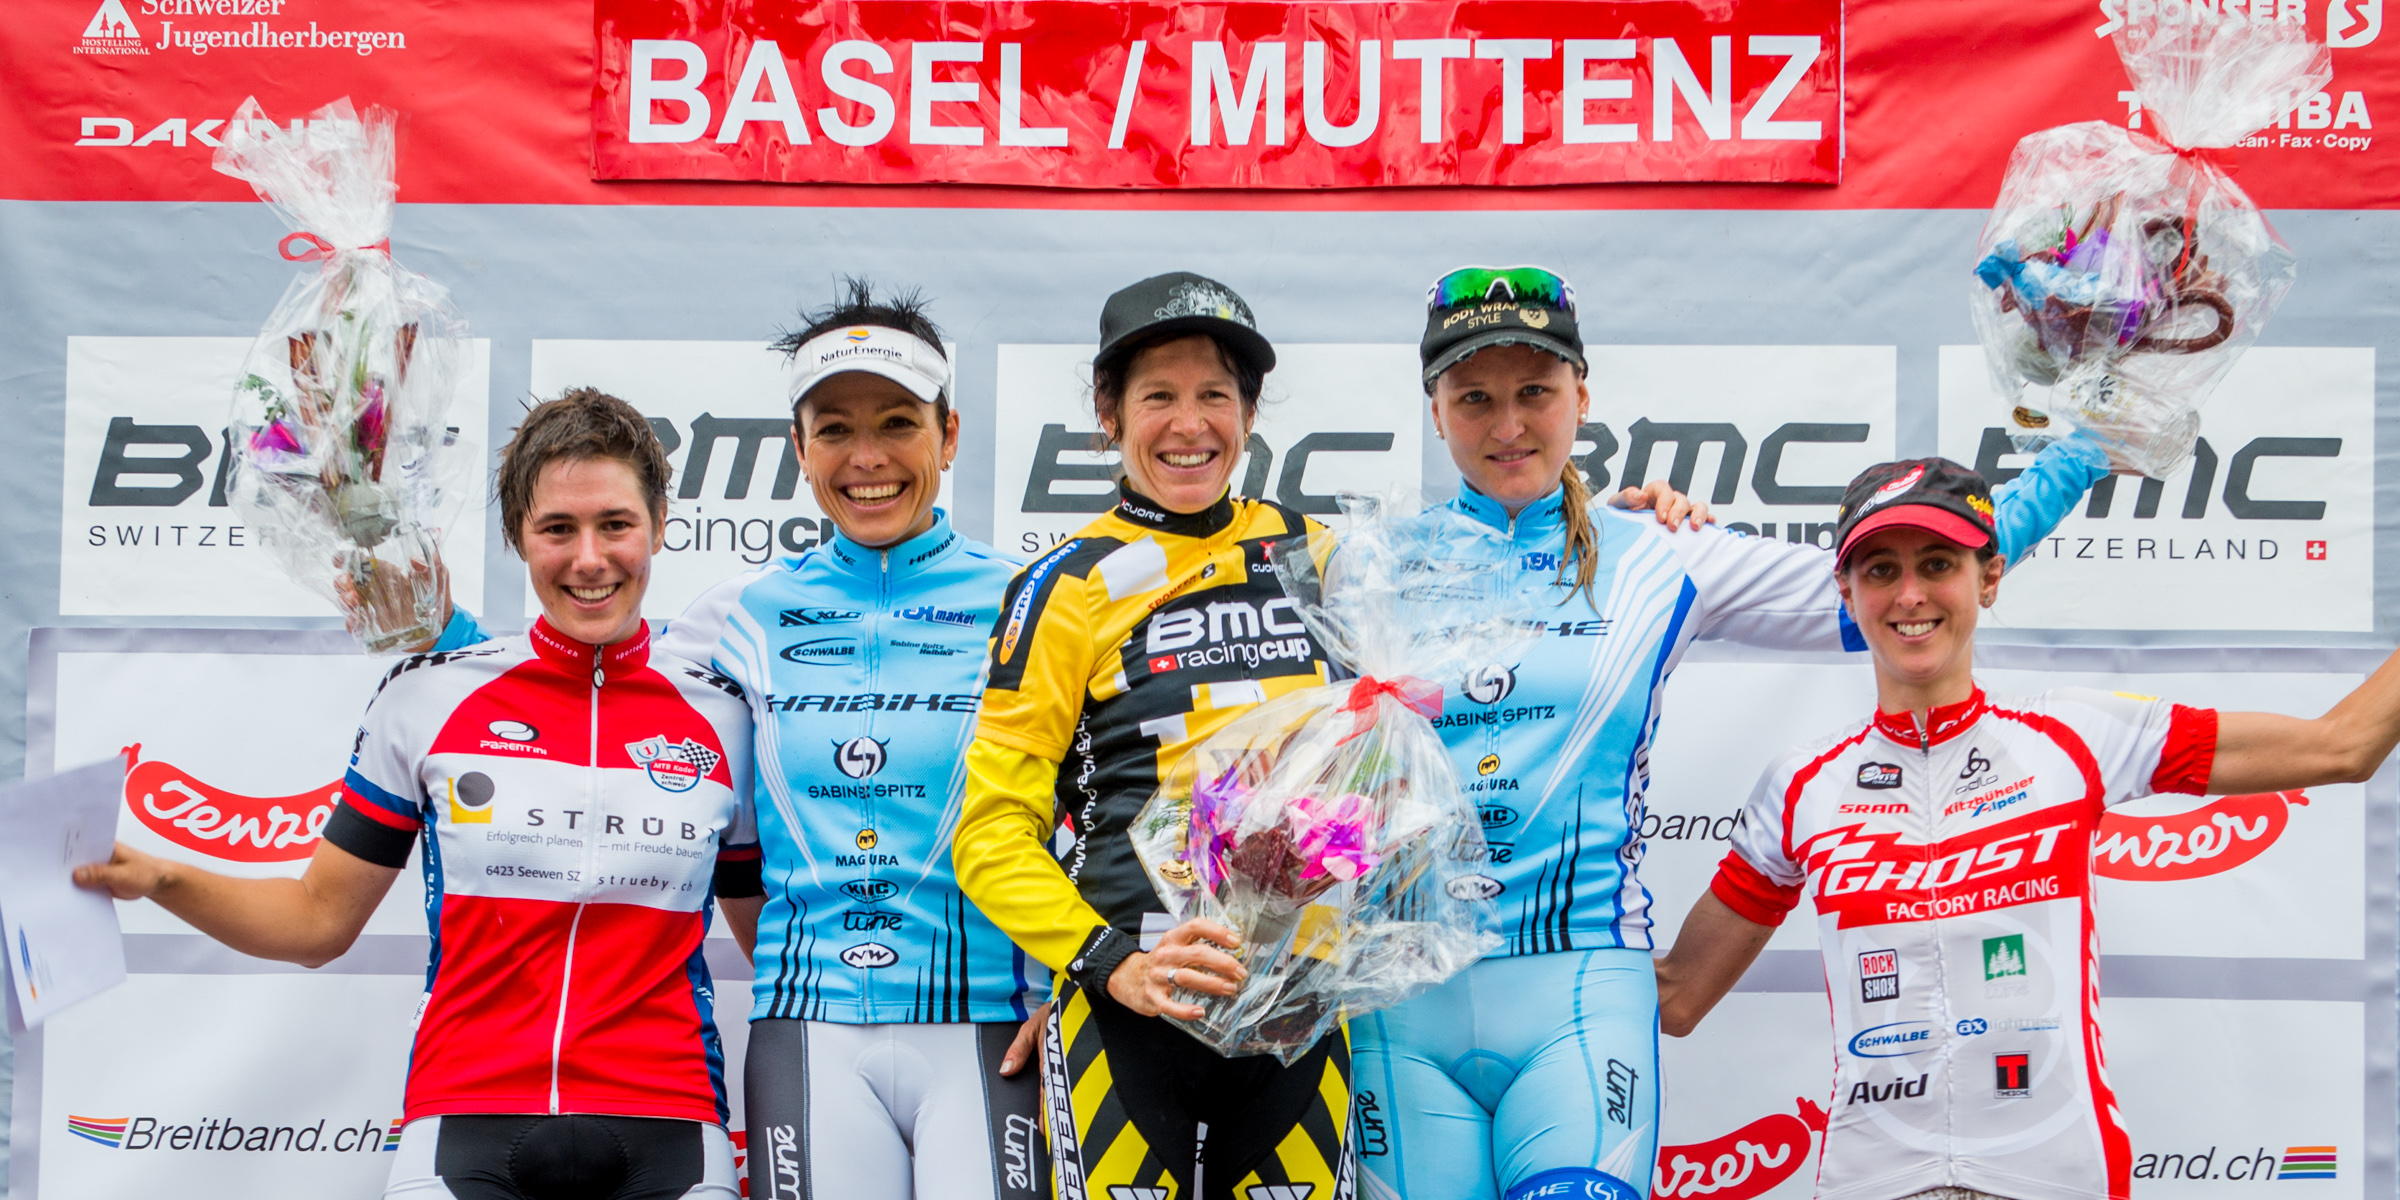 130824_SUI_Muttenz_XC_Women_ceremony_IndergandL_Spitz_Suess_StirnemannK_Leumann_acrossthecountry_mountainbike_by_Kuestenbrueck